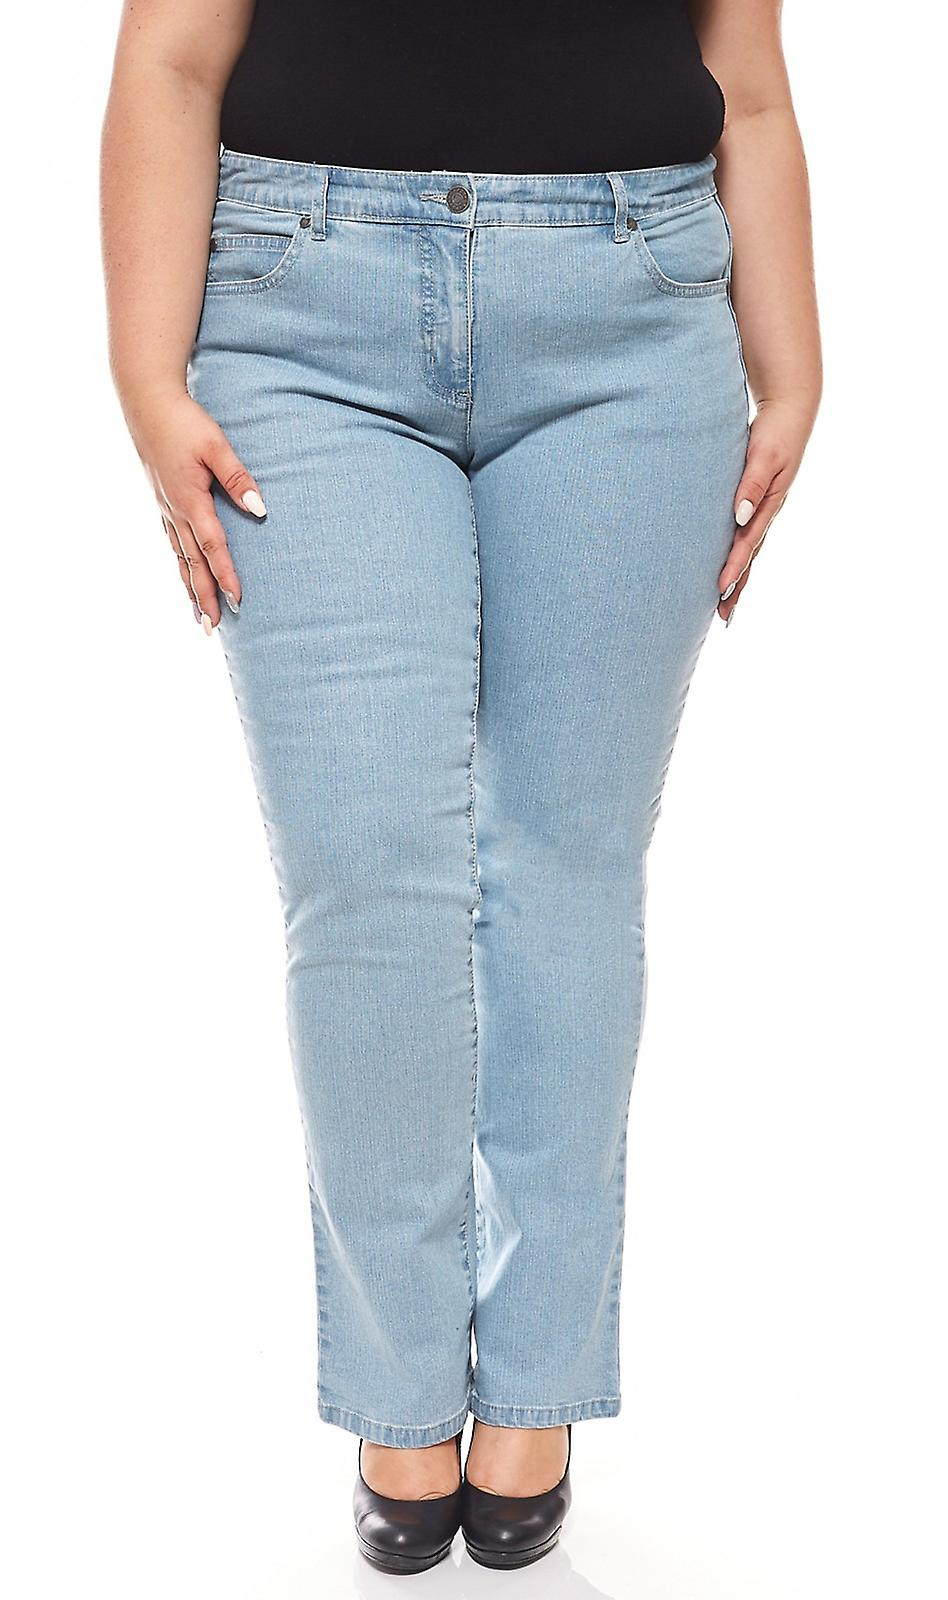 b17a6b51cdeed sheego denim stretch jeans with embroidery plus size blue